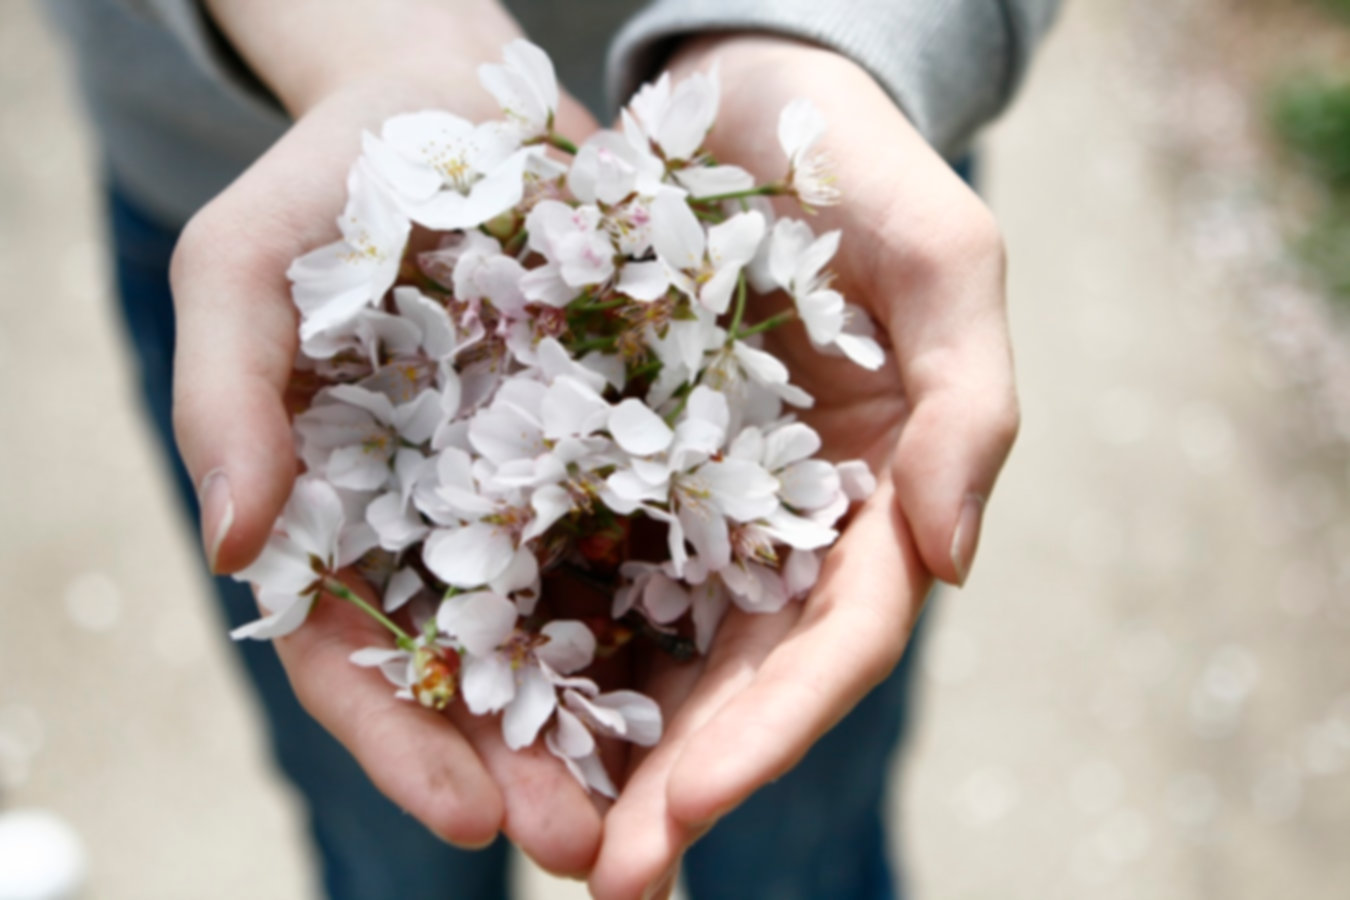 picture of giving flowers.jpg